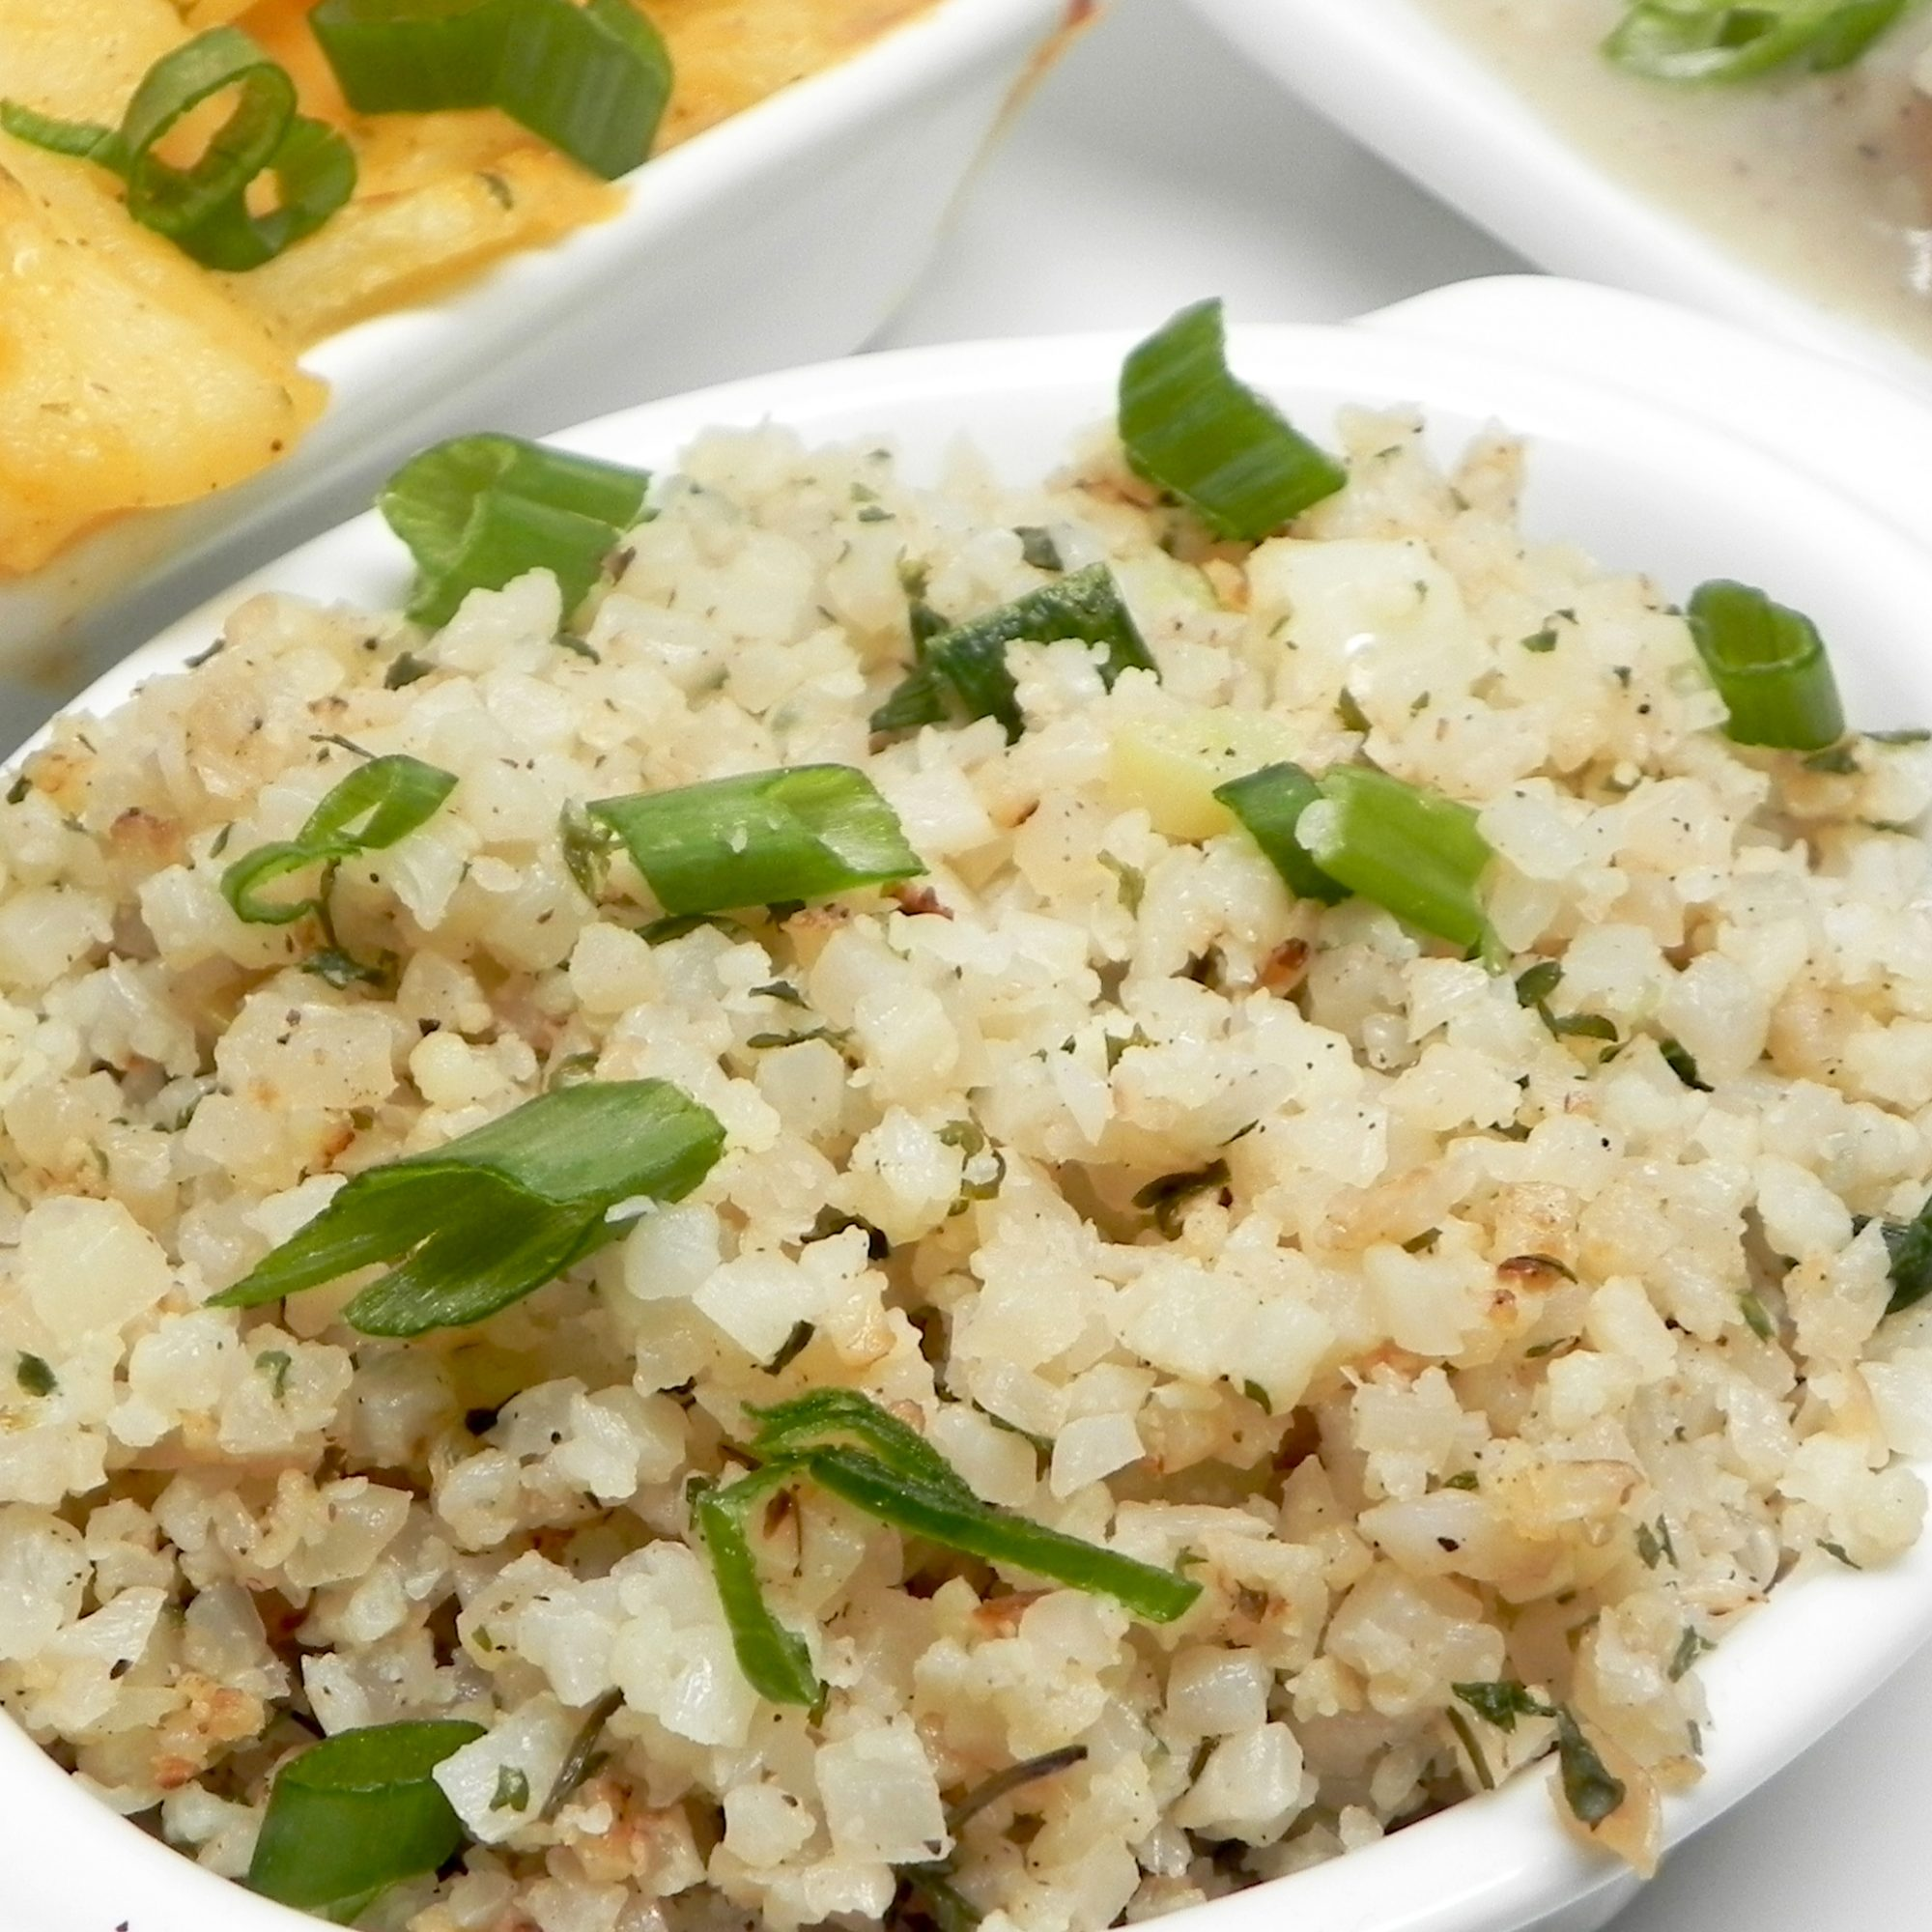 Herbed Cauliflower Rice in a white dish